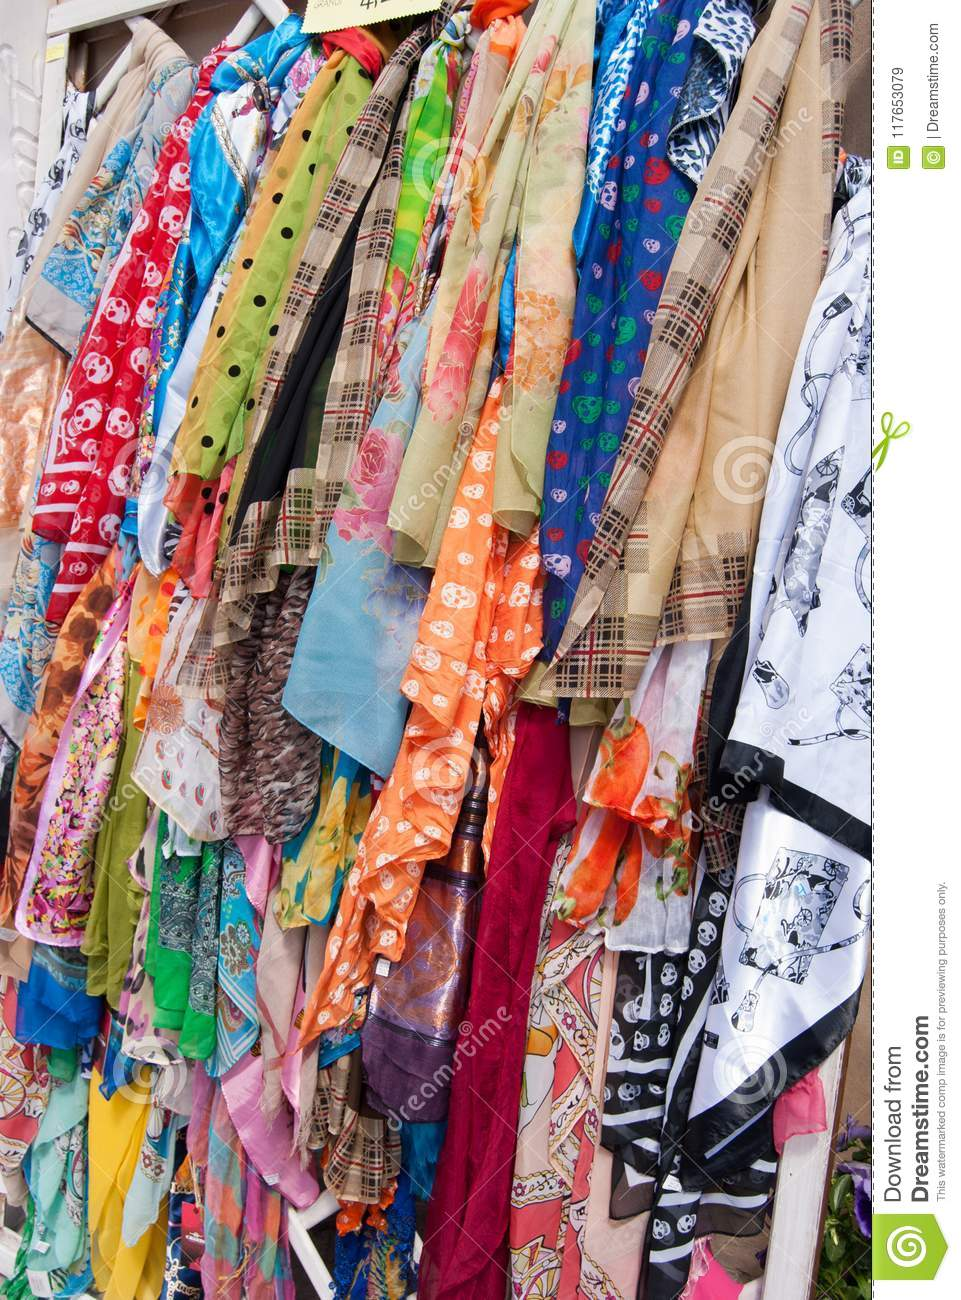 Many brightly colored scarves hung as souvenirs